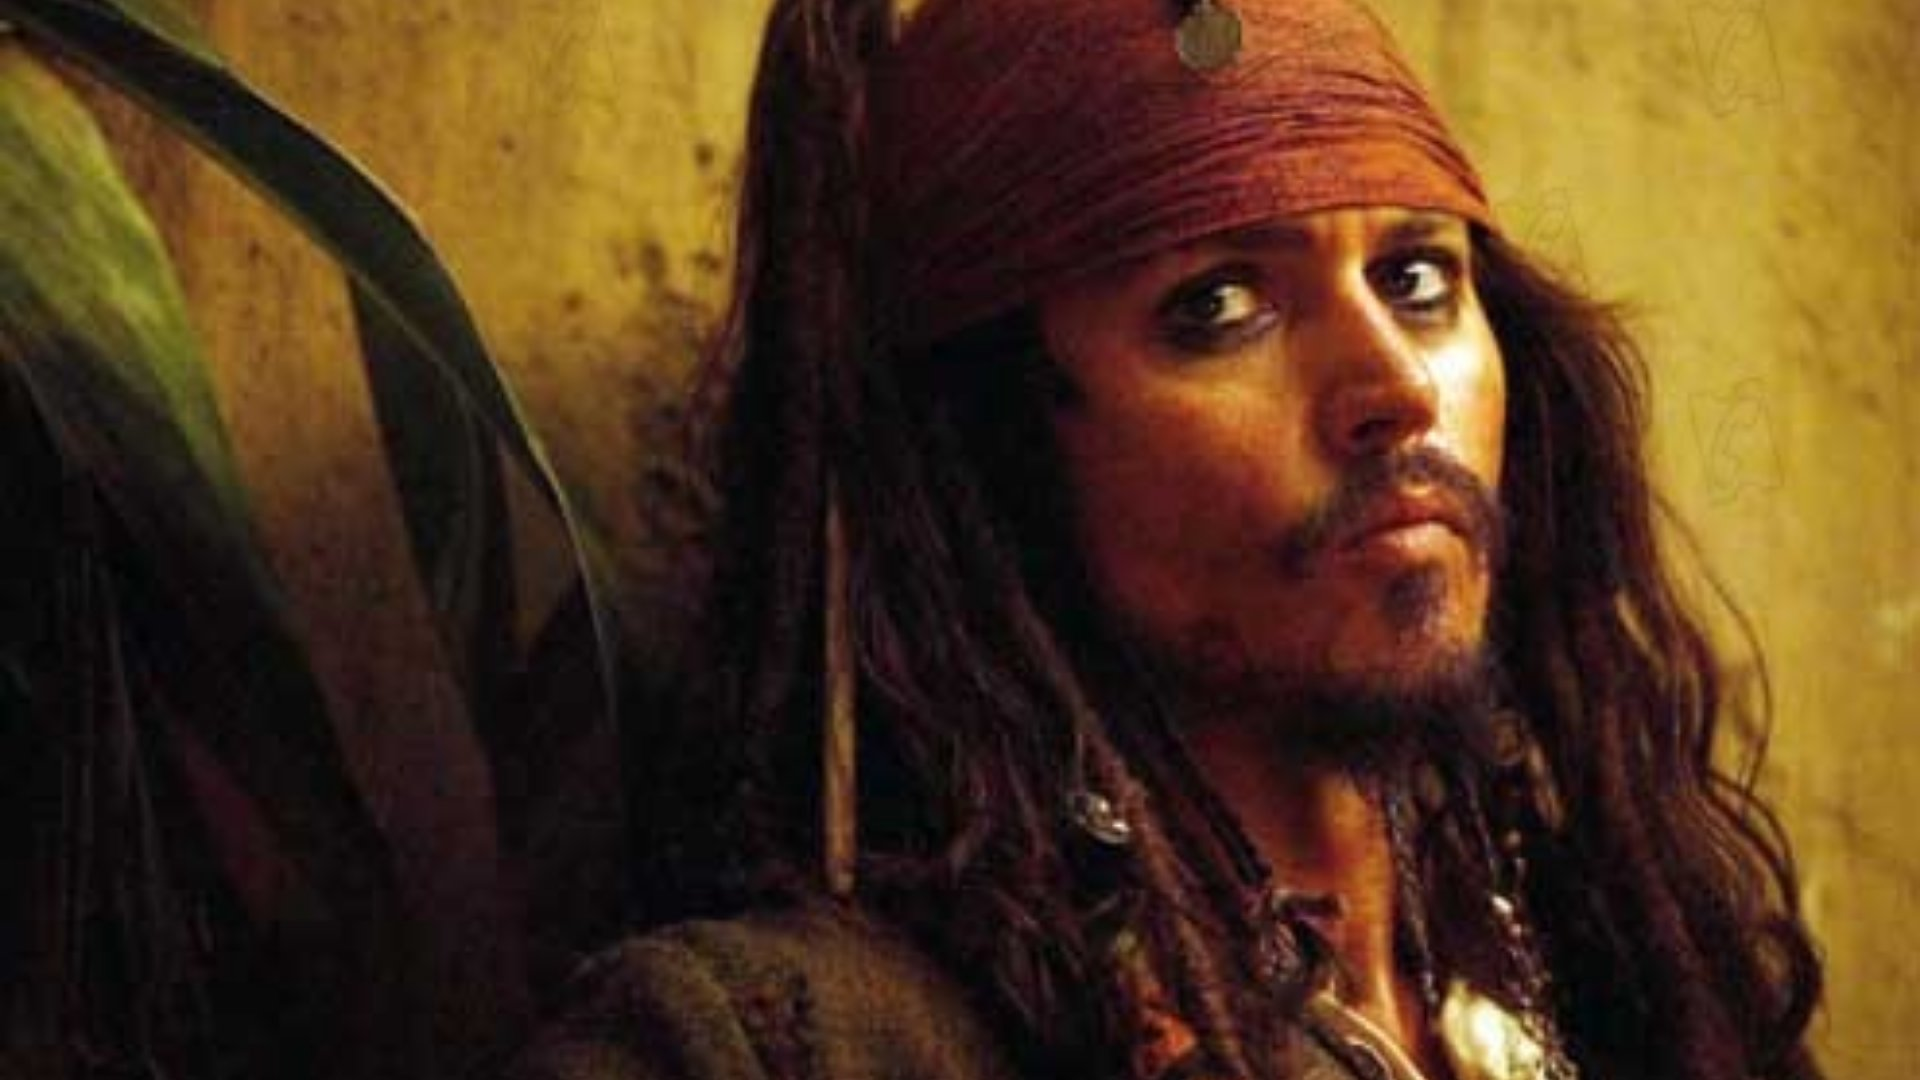 Os Piratas Que Roubaram A Cena De Hollywood